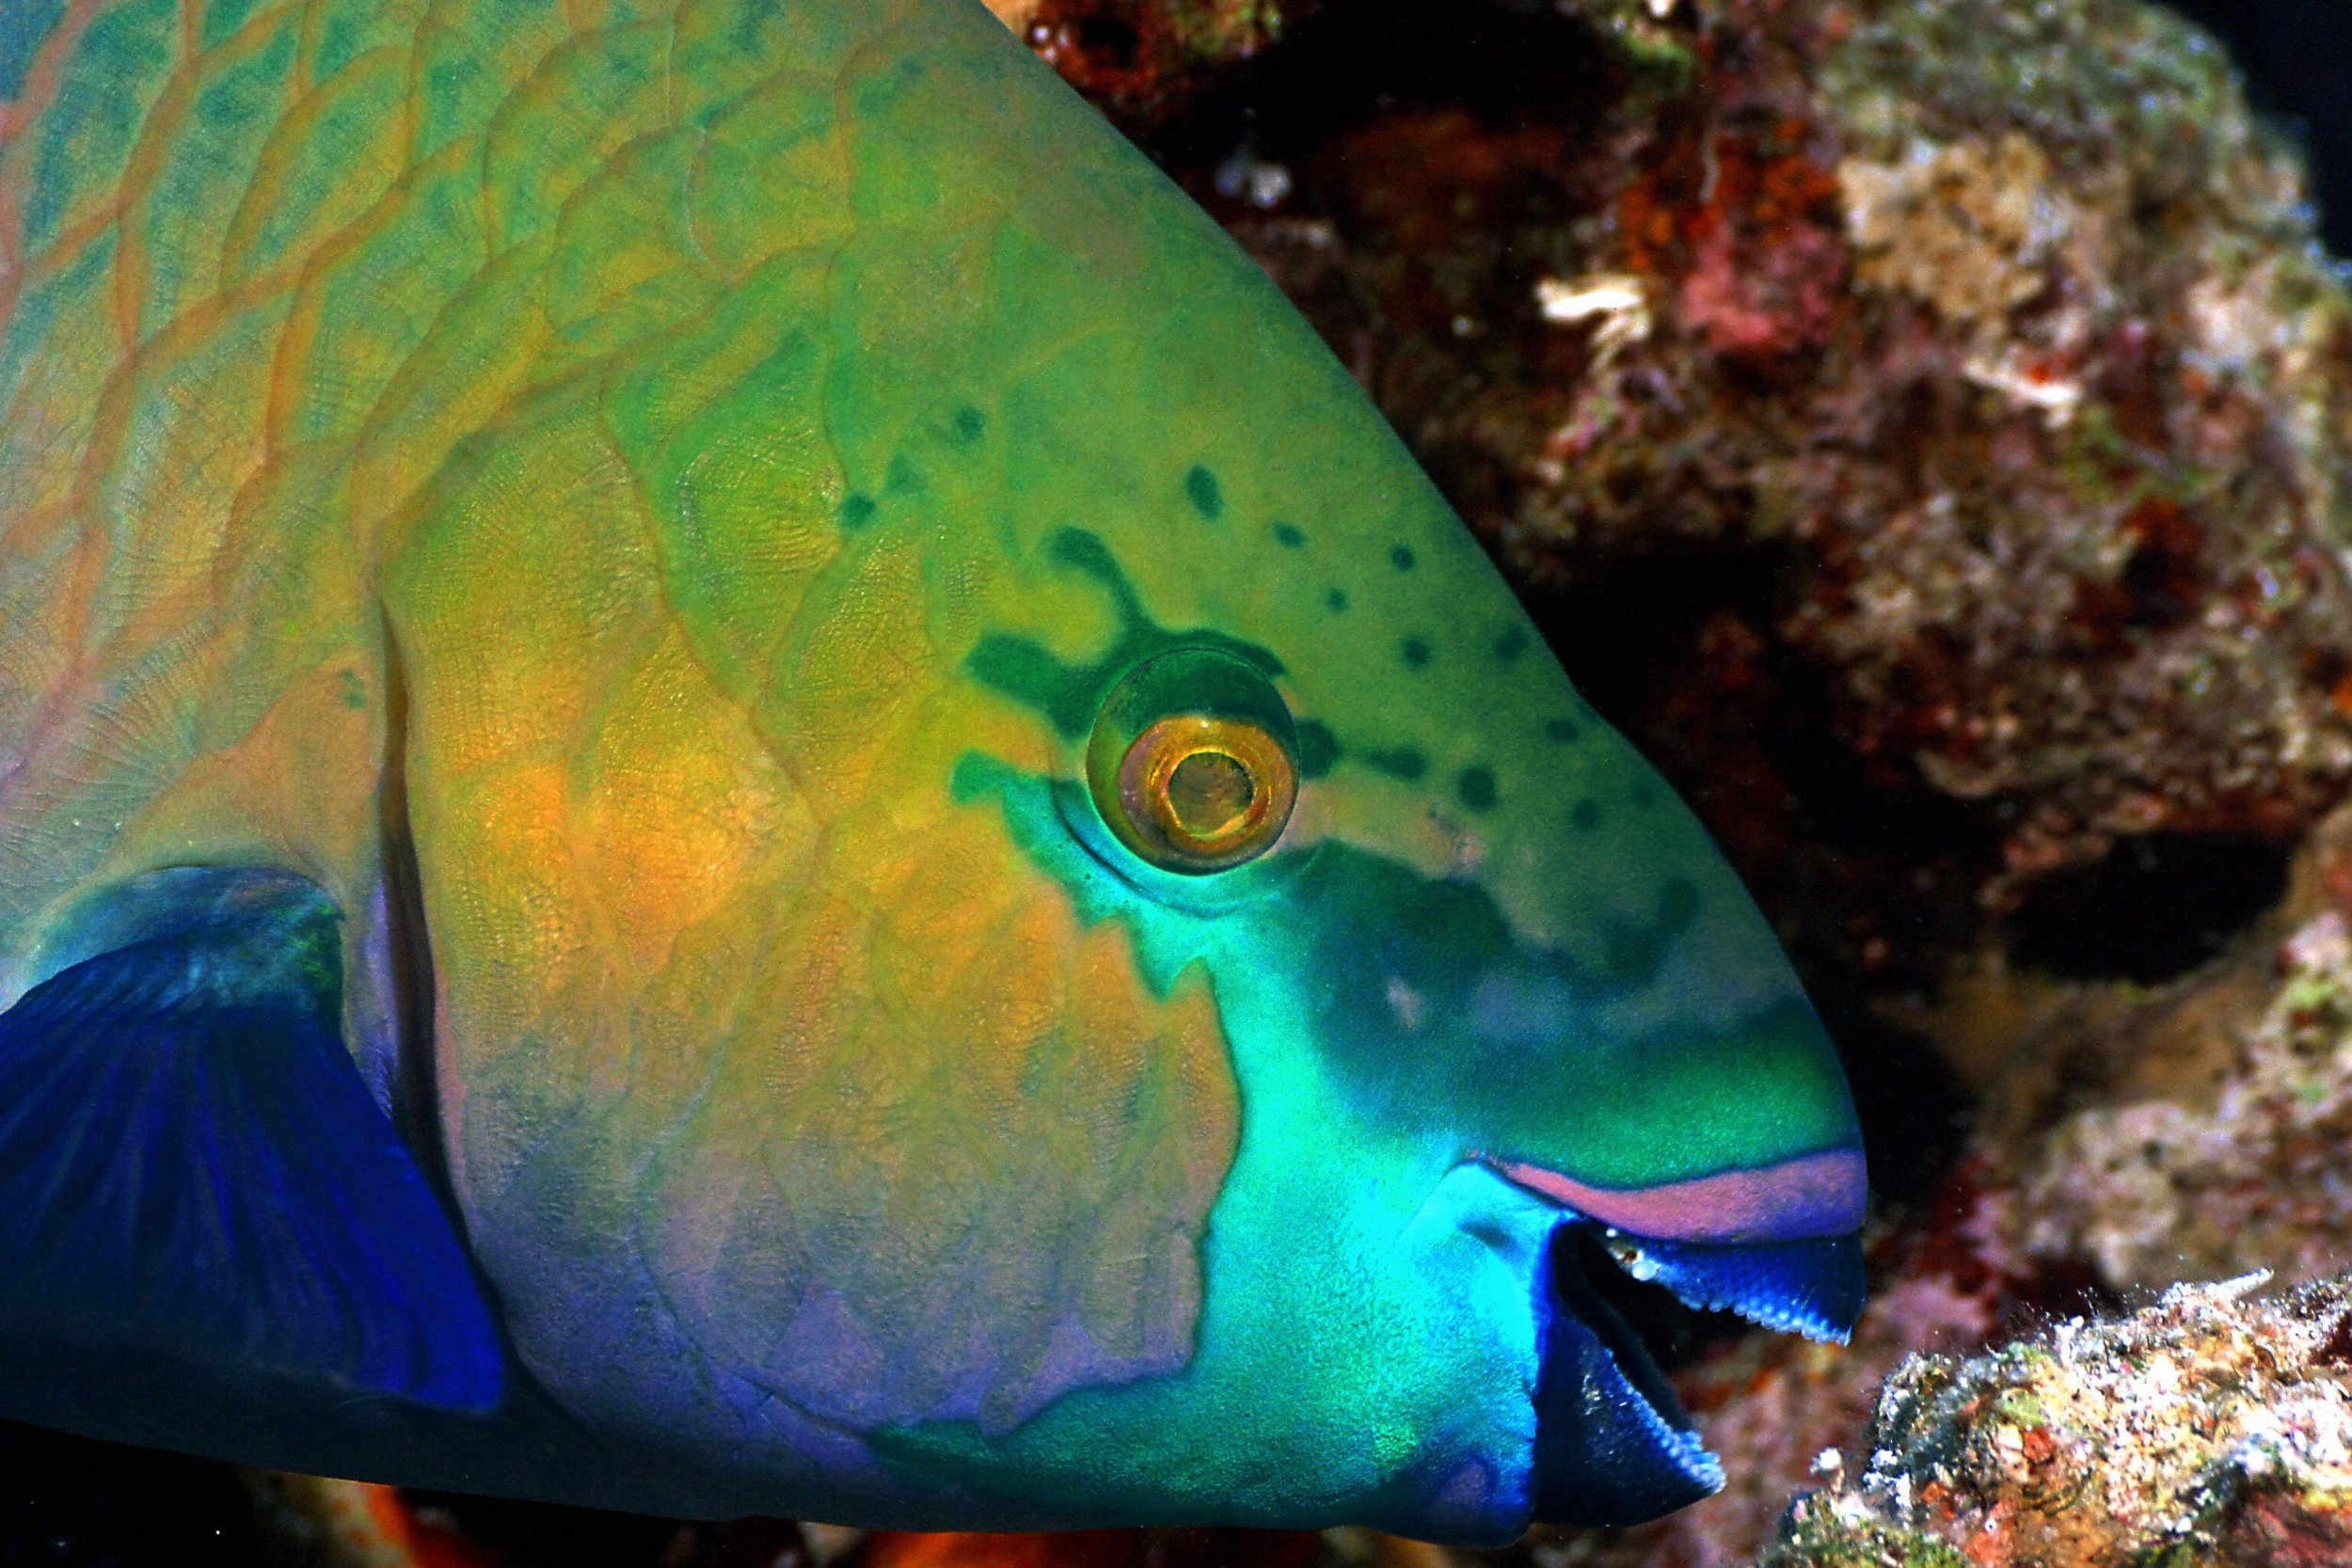 Where Does Sand Come From Parrotfish Poop Makes White Beaches And Now Scientists Know How